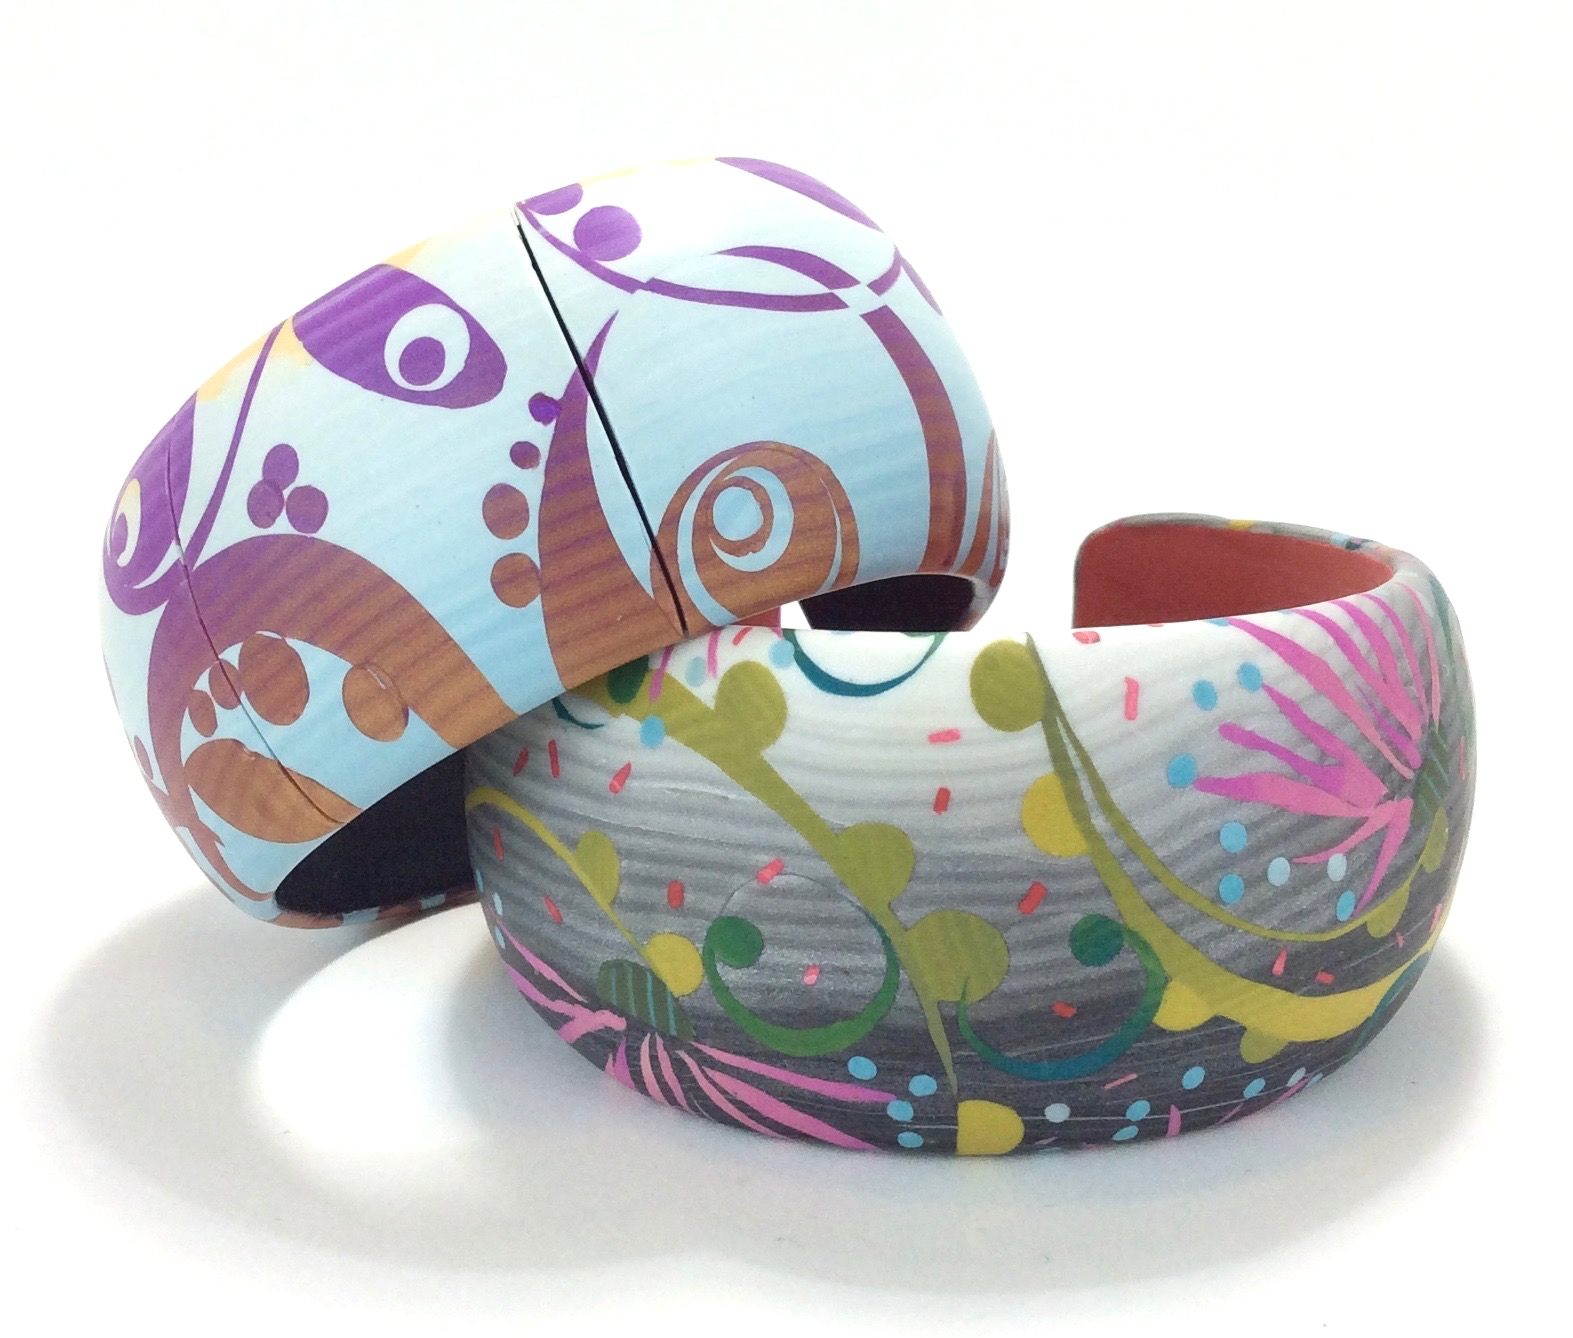 "Veneered Cuff Bracelets   2018  Polymer clay marquetry veneer, nickel silver armature, apoxy clay core  9"" circumference  x 1.5"" w"